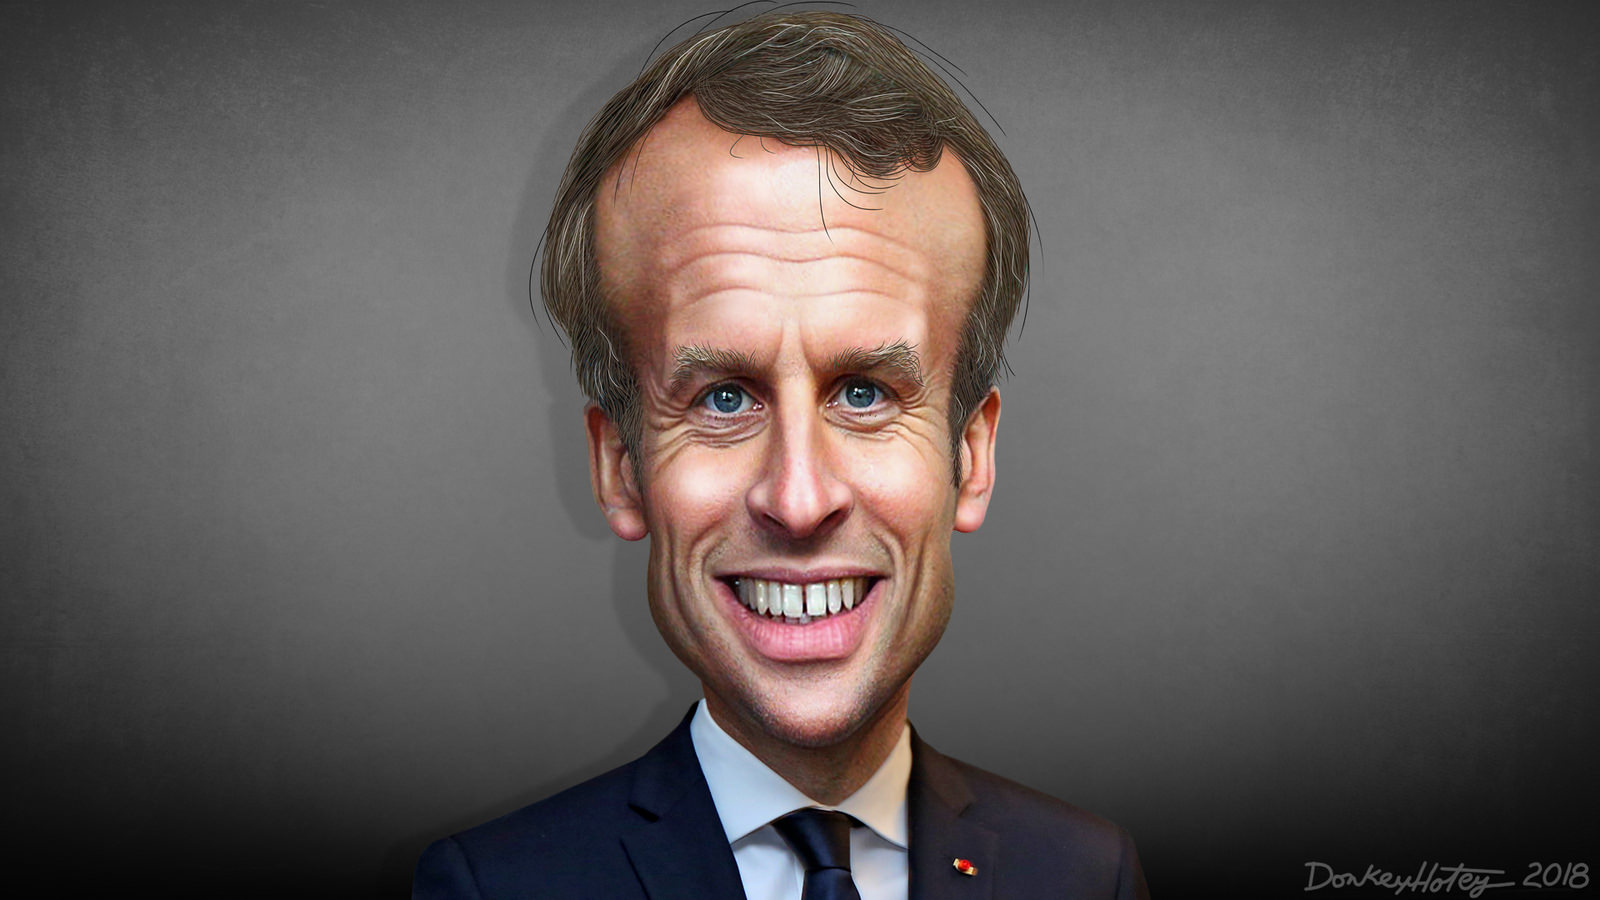 MyFrenchLife™ - MyFrenchLife.org - Emmanuel Macron: bad language in the Élysée? – Quelle horreur